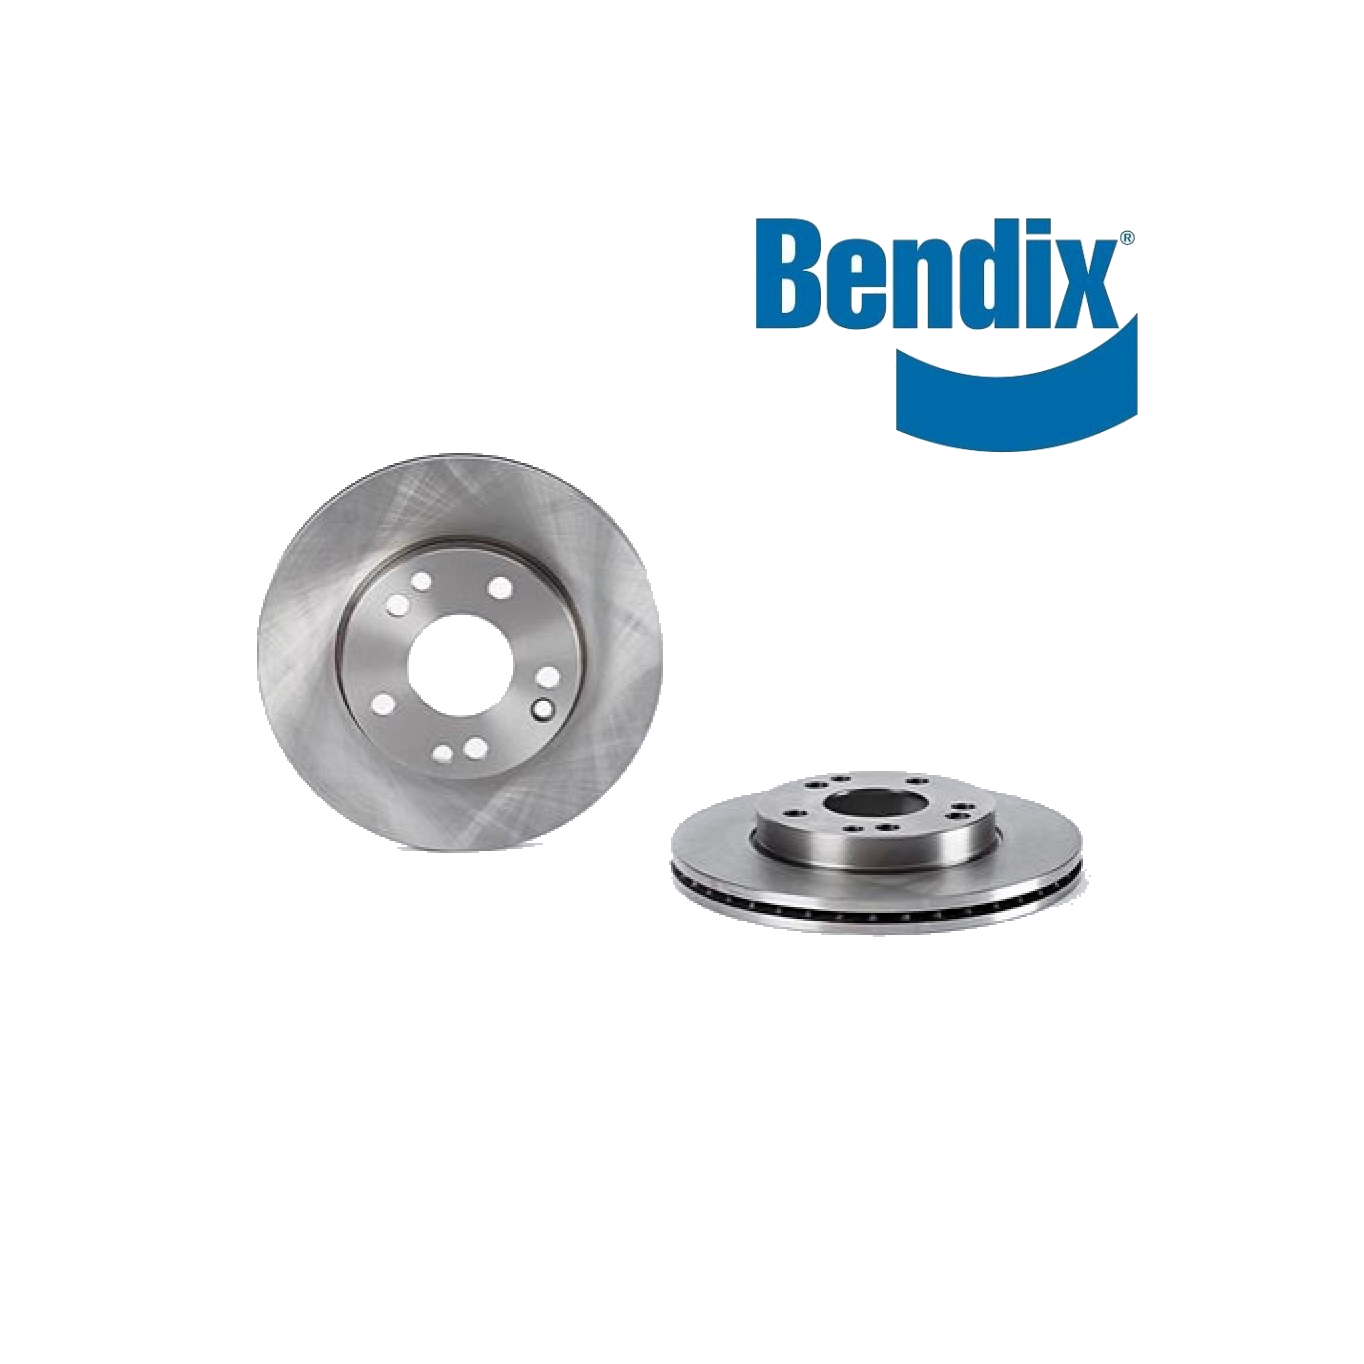 PAIR FRONT BRAKE DISCS MERCEDES BENZ 190 W201 BENDIX FOR A2014211312